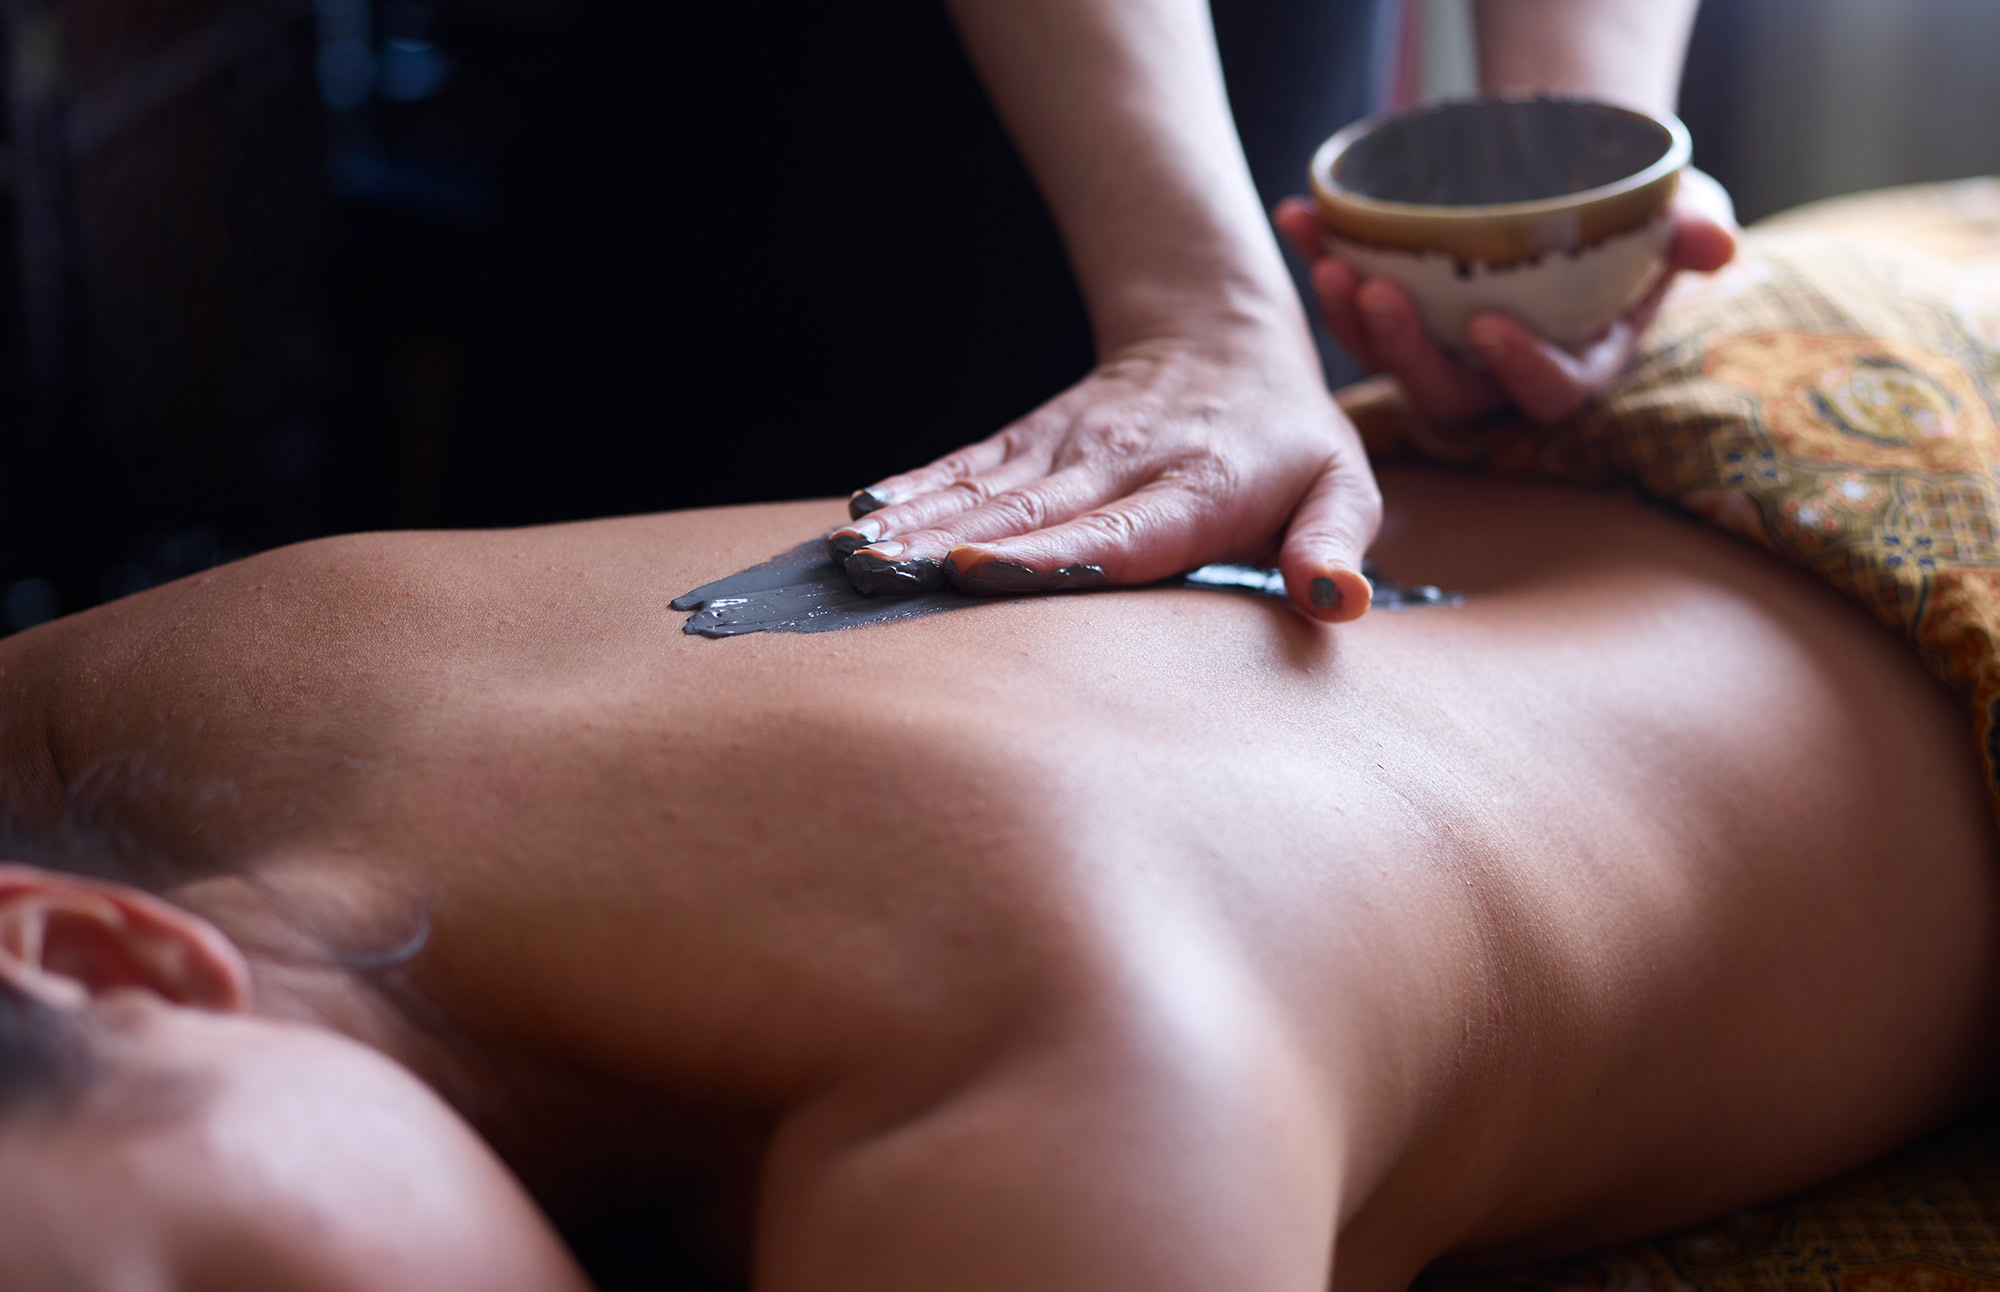 A therapist applies a mud treatment using her hand to a woman's back.